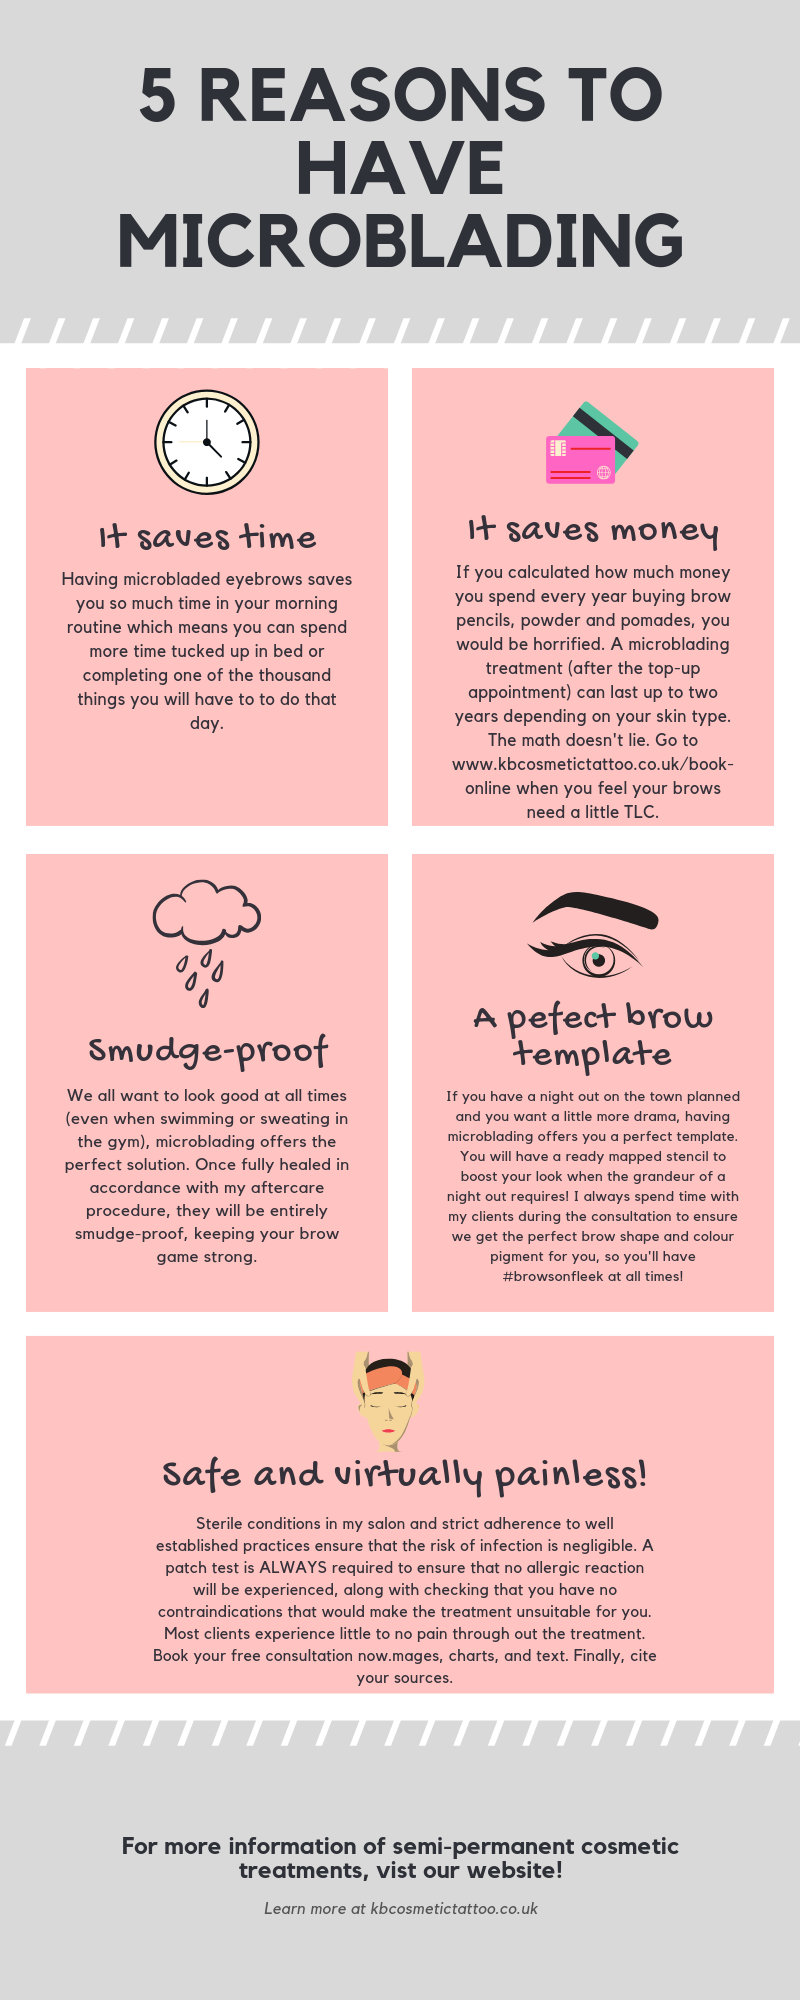 5 Reasons to have microblading infographic, Microblading Norwich, Microbladed Eyebrows, Microblading near me, Norfolk, KB Cosmetic Tattoo